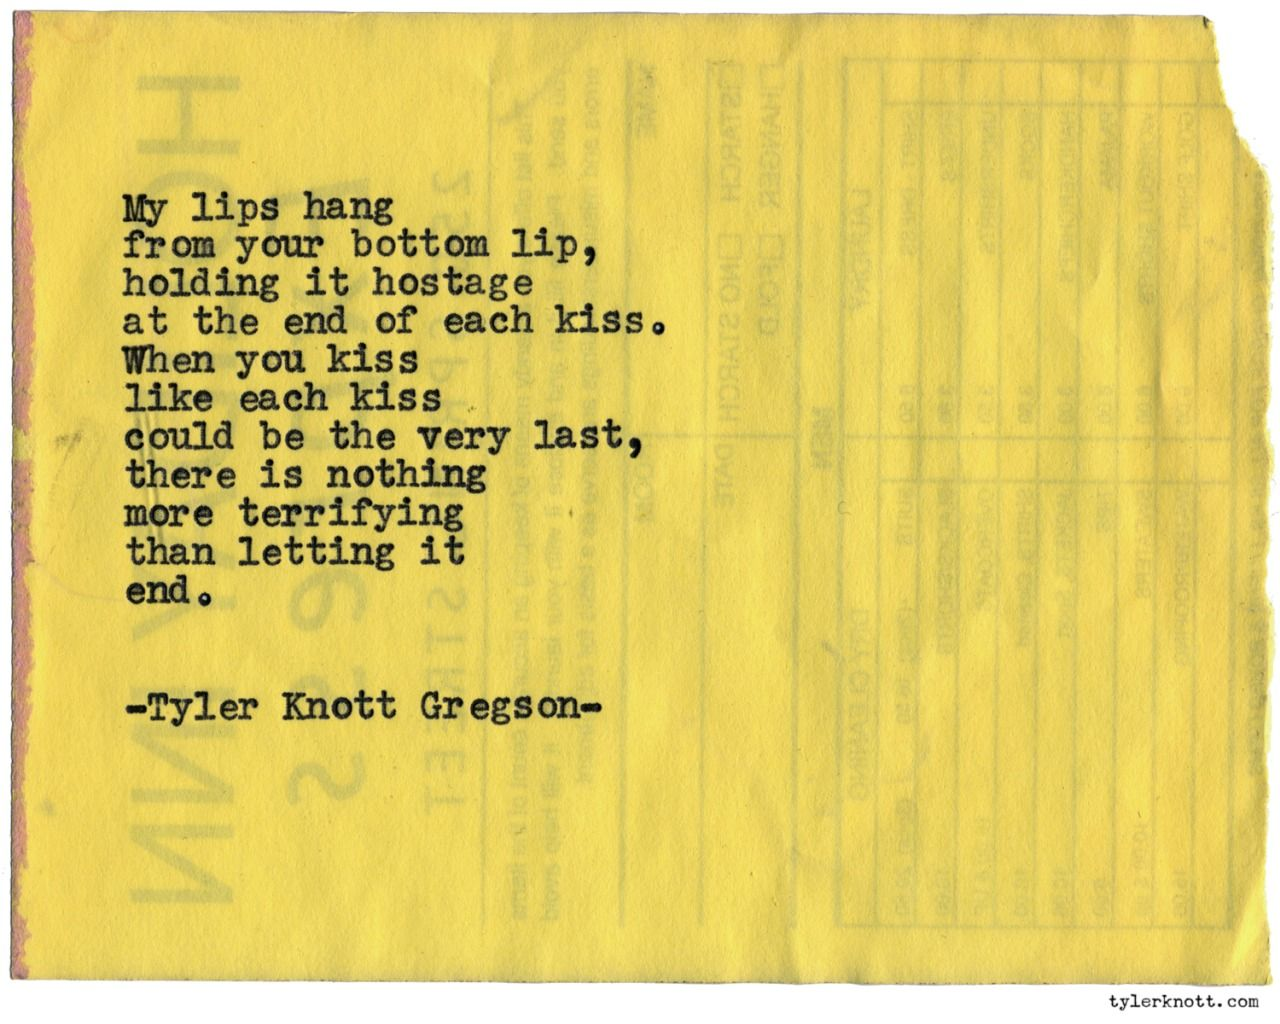 Typewriter Series 1043 By Tyler Knott Gregson Chasers Of The